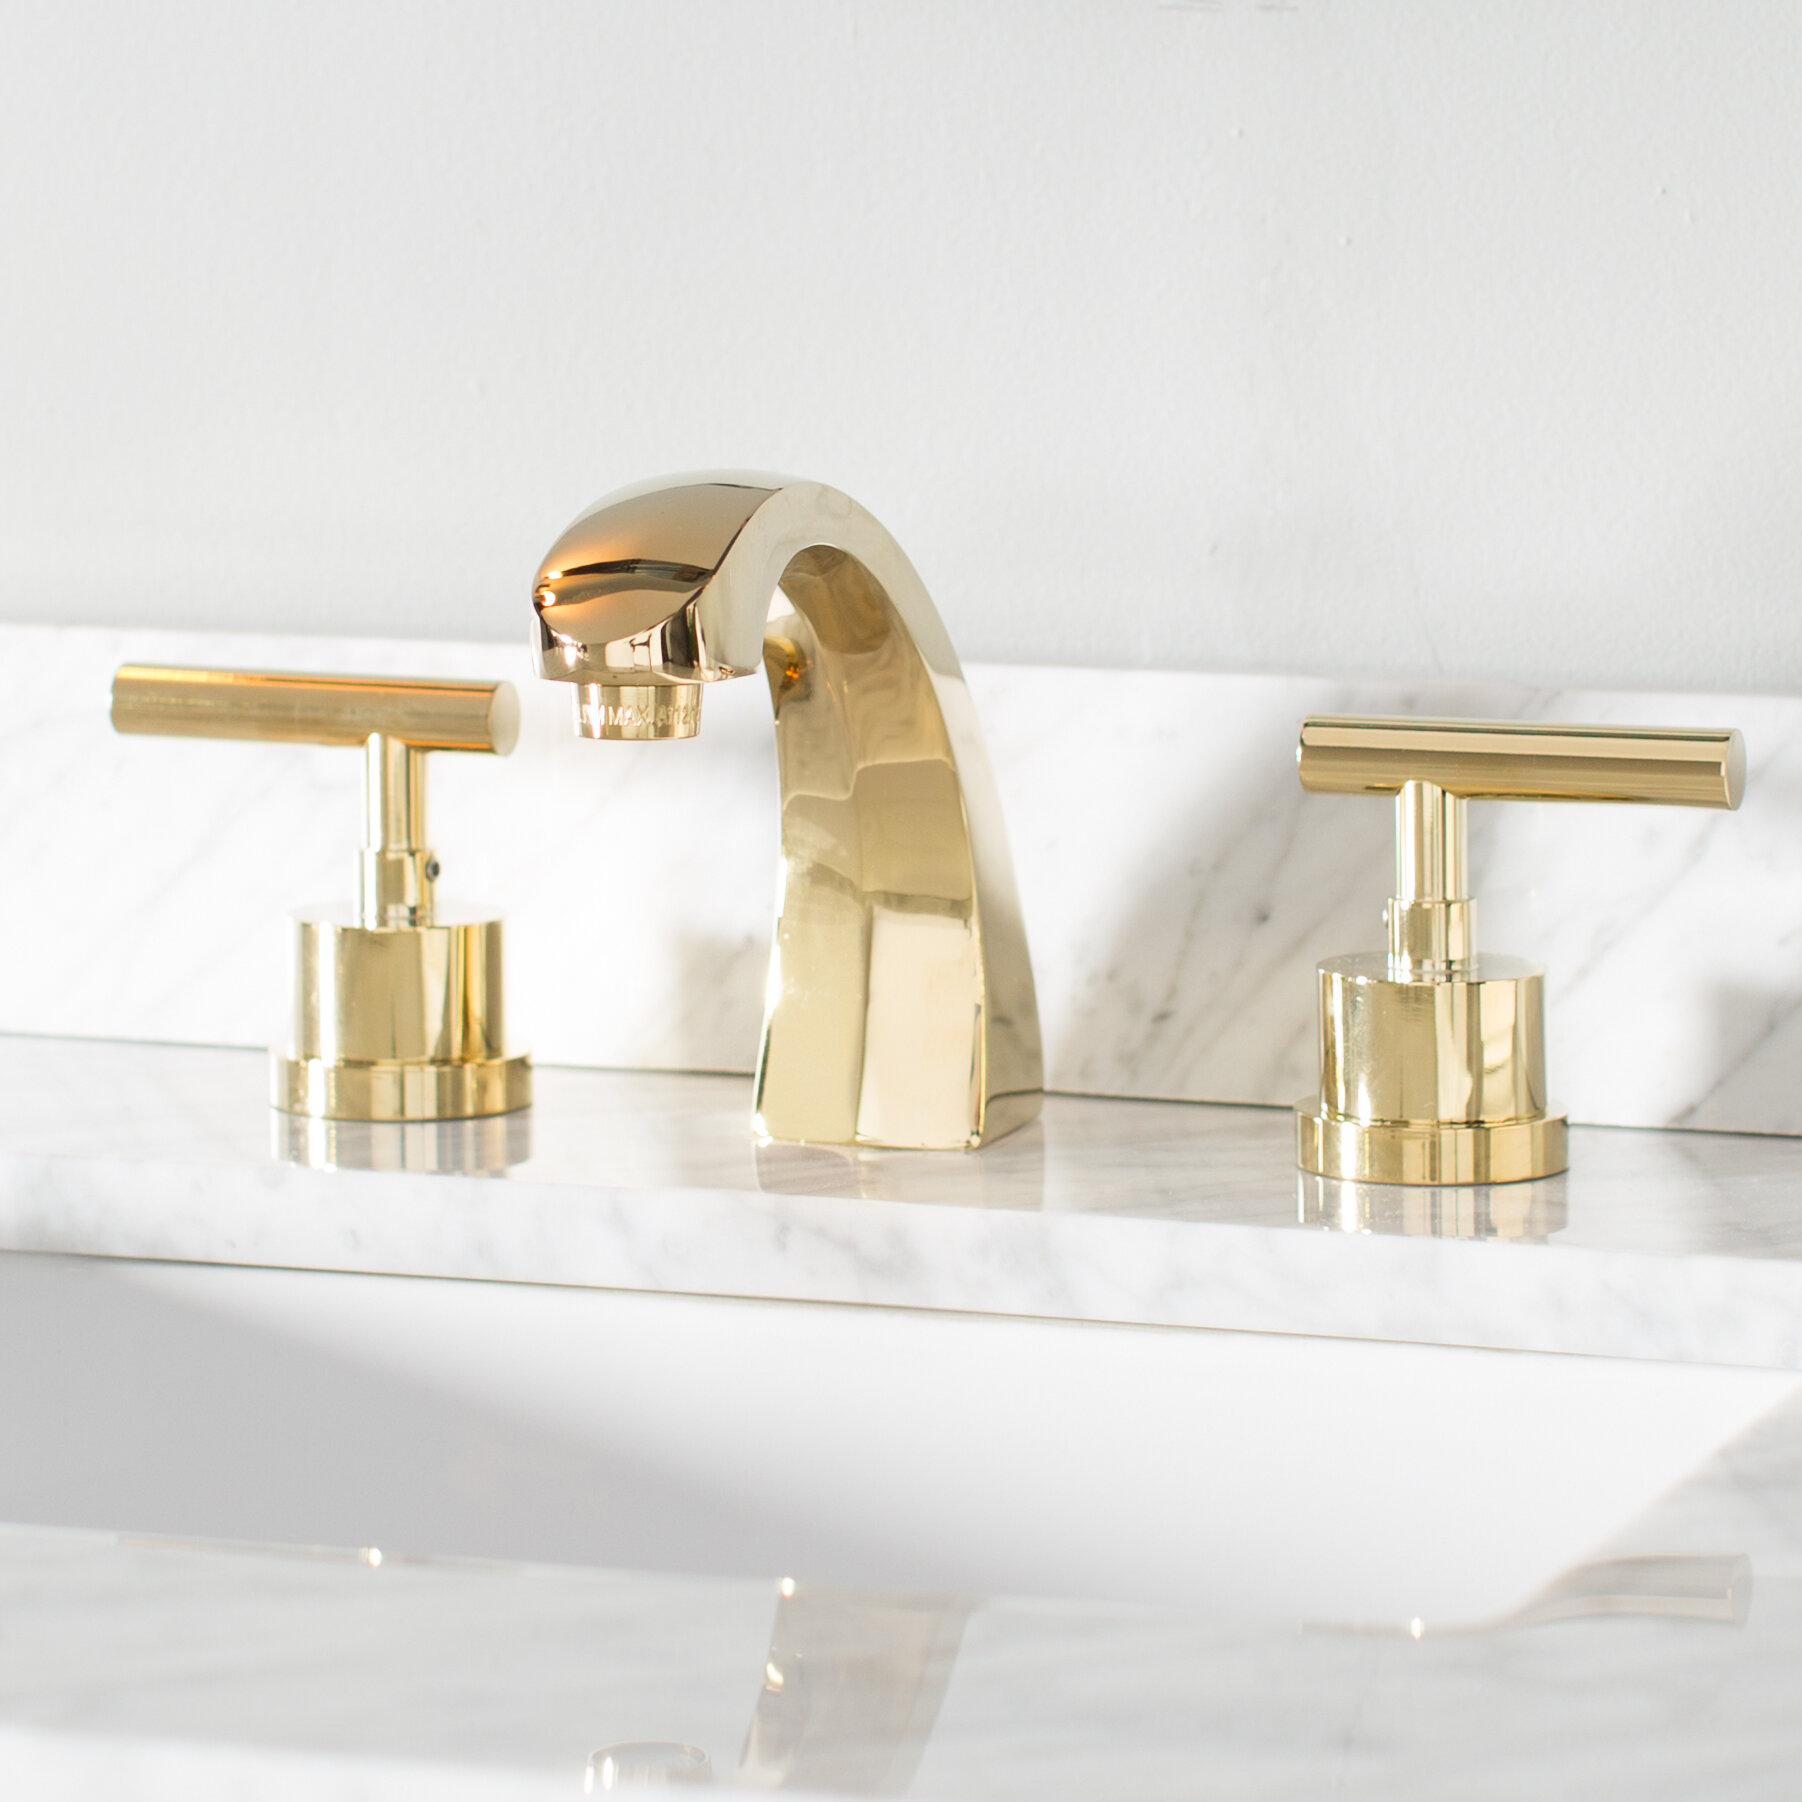 vessel wall kingston product polished brass faucet centers sink mount inch